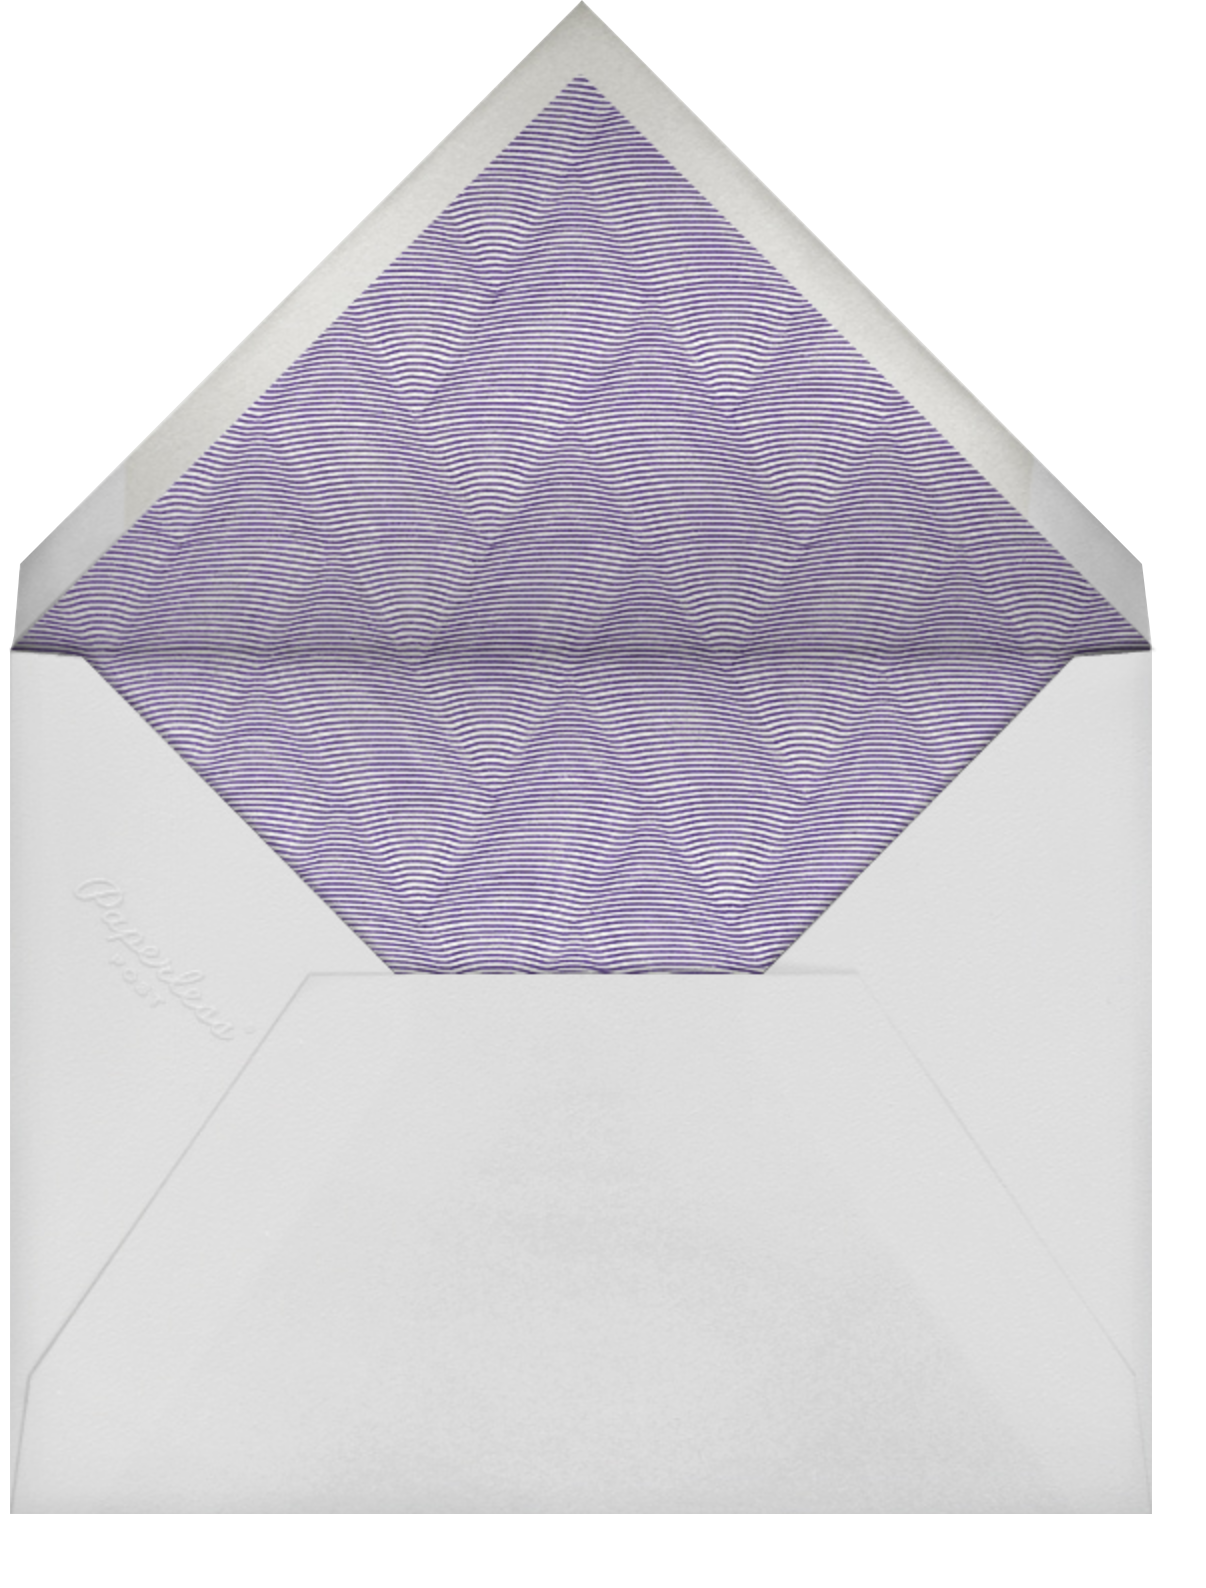 XO - Kelly Wearstler - Thinking of you - envelope back